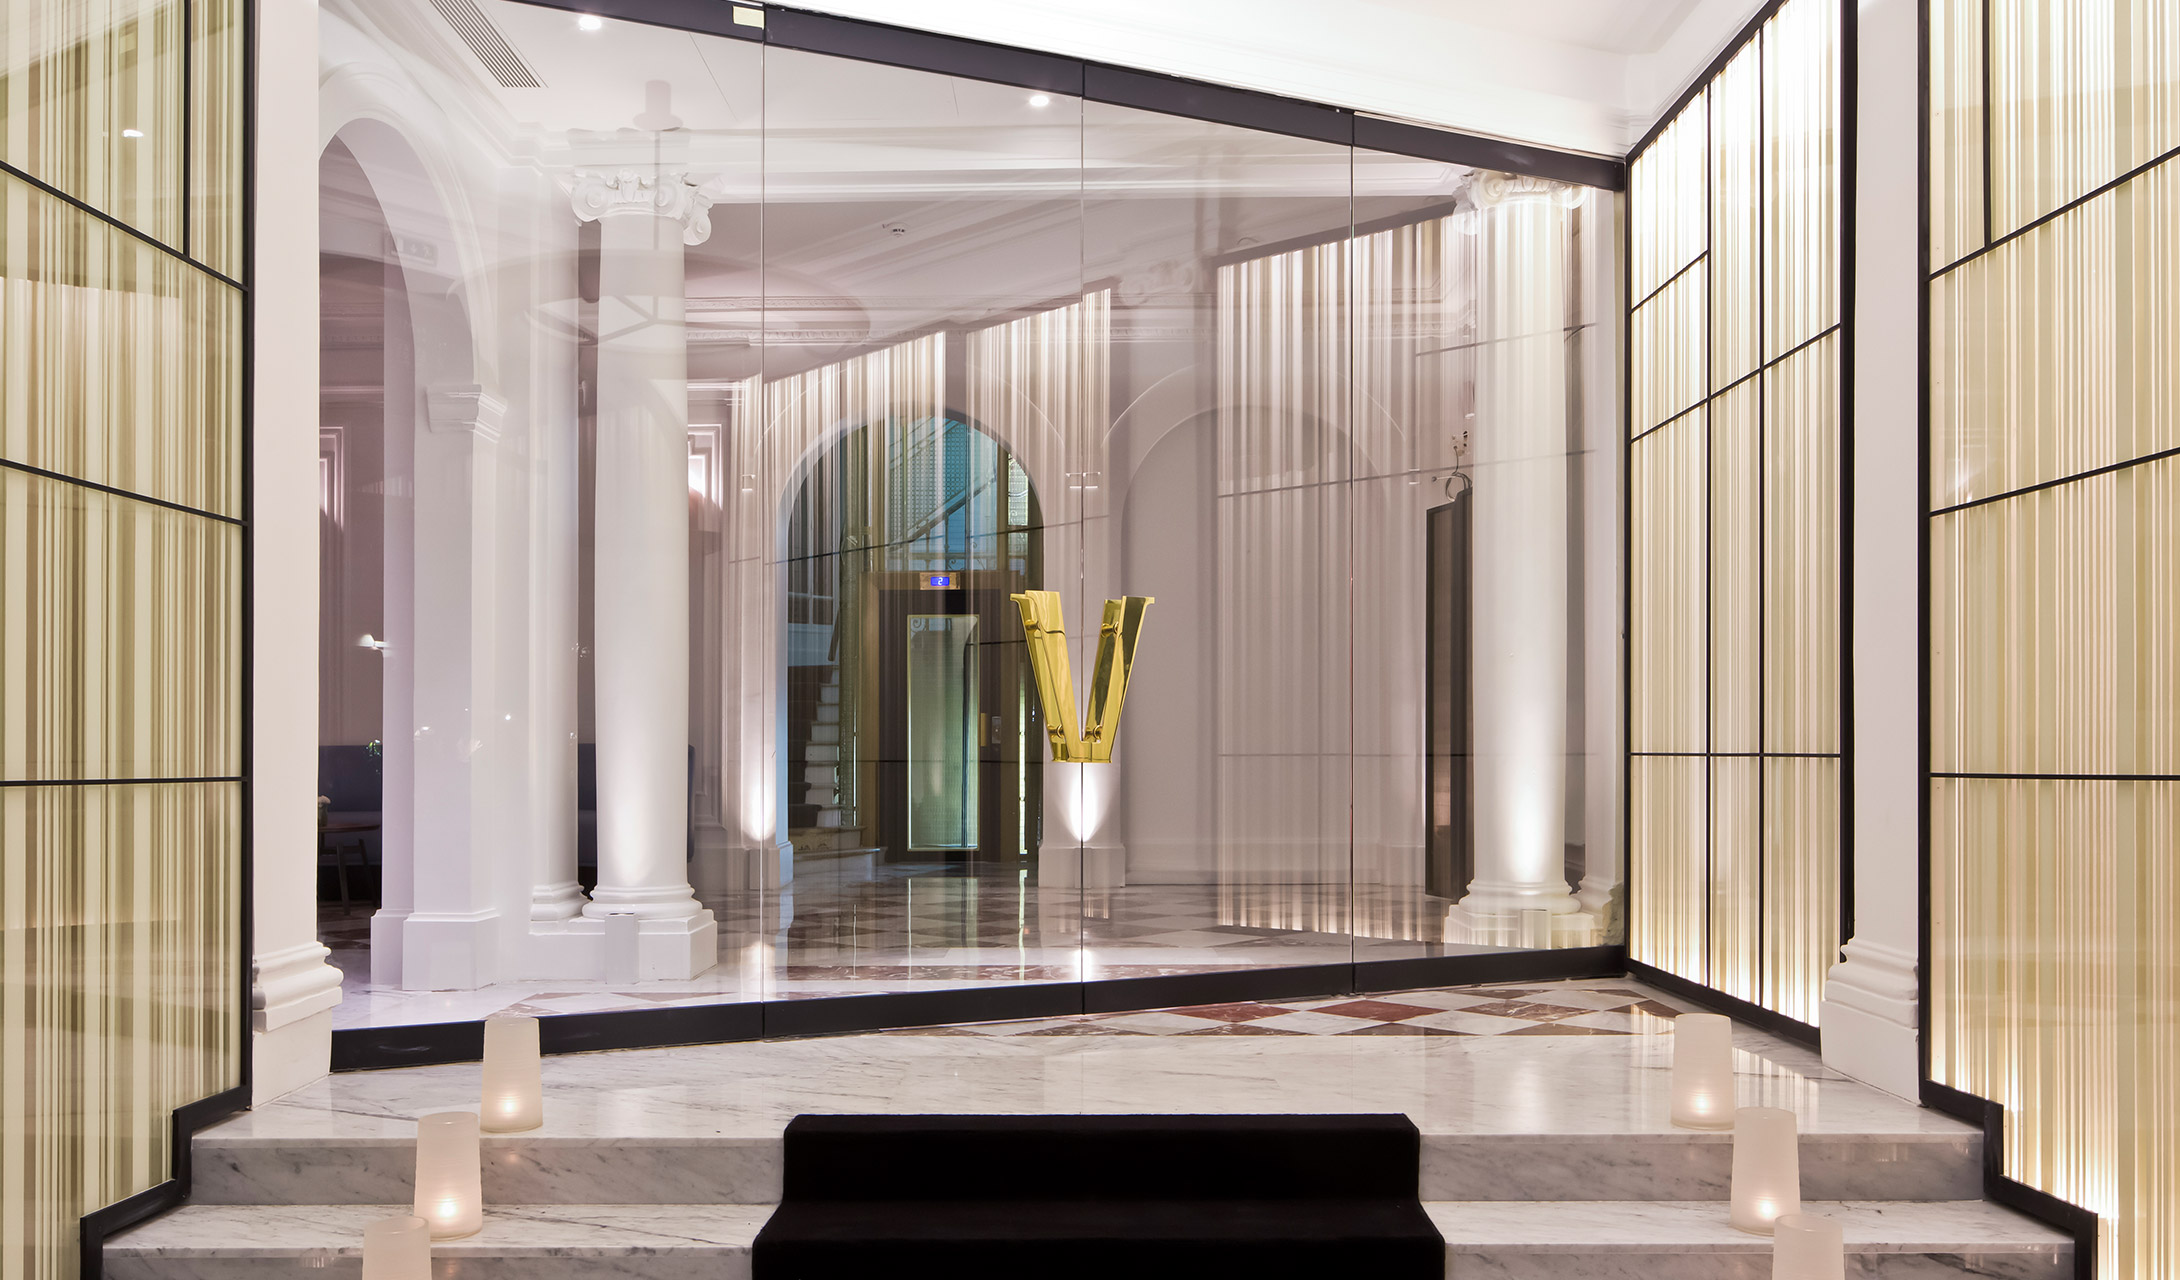 Hotel vernet paris france design hotels for U design hotel